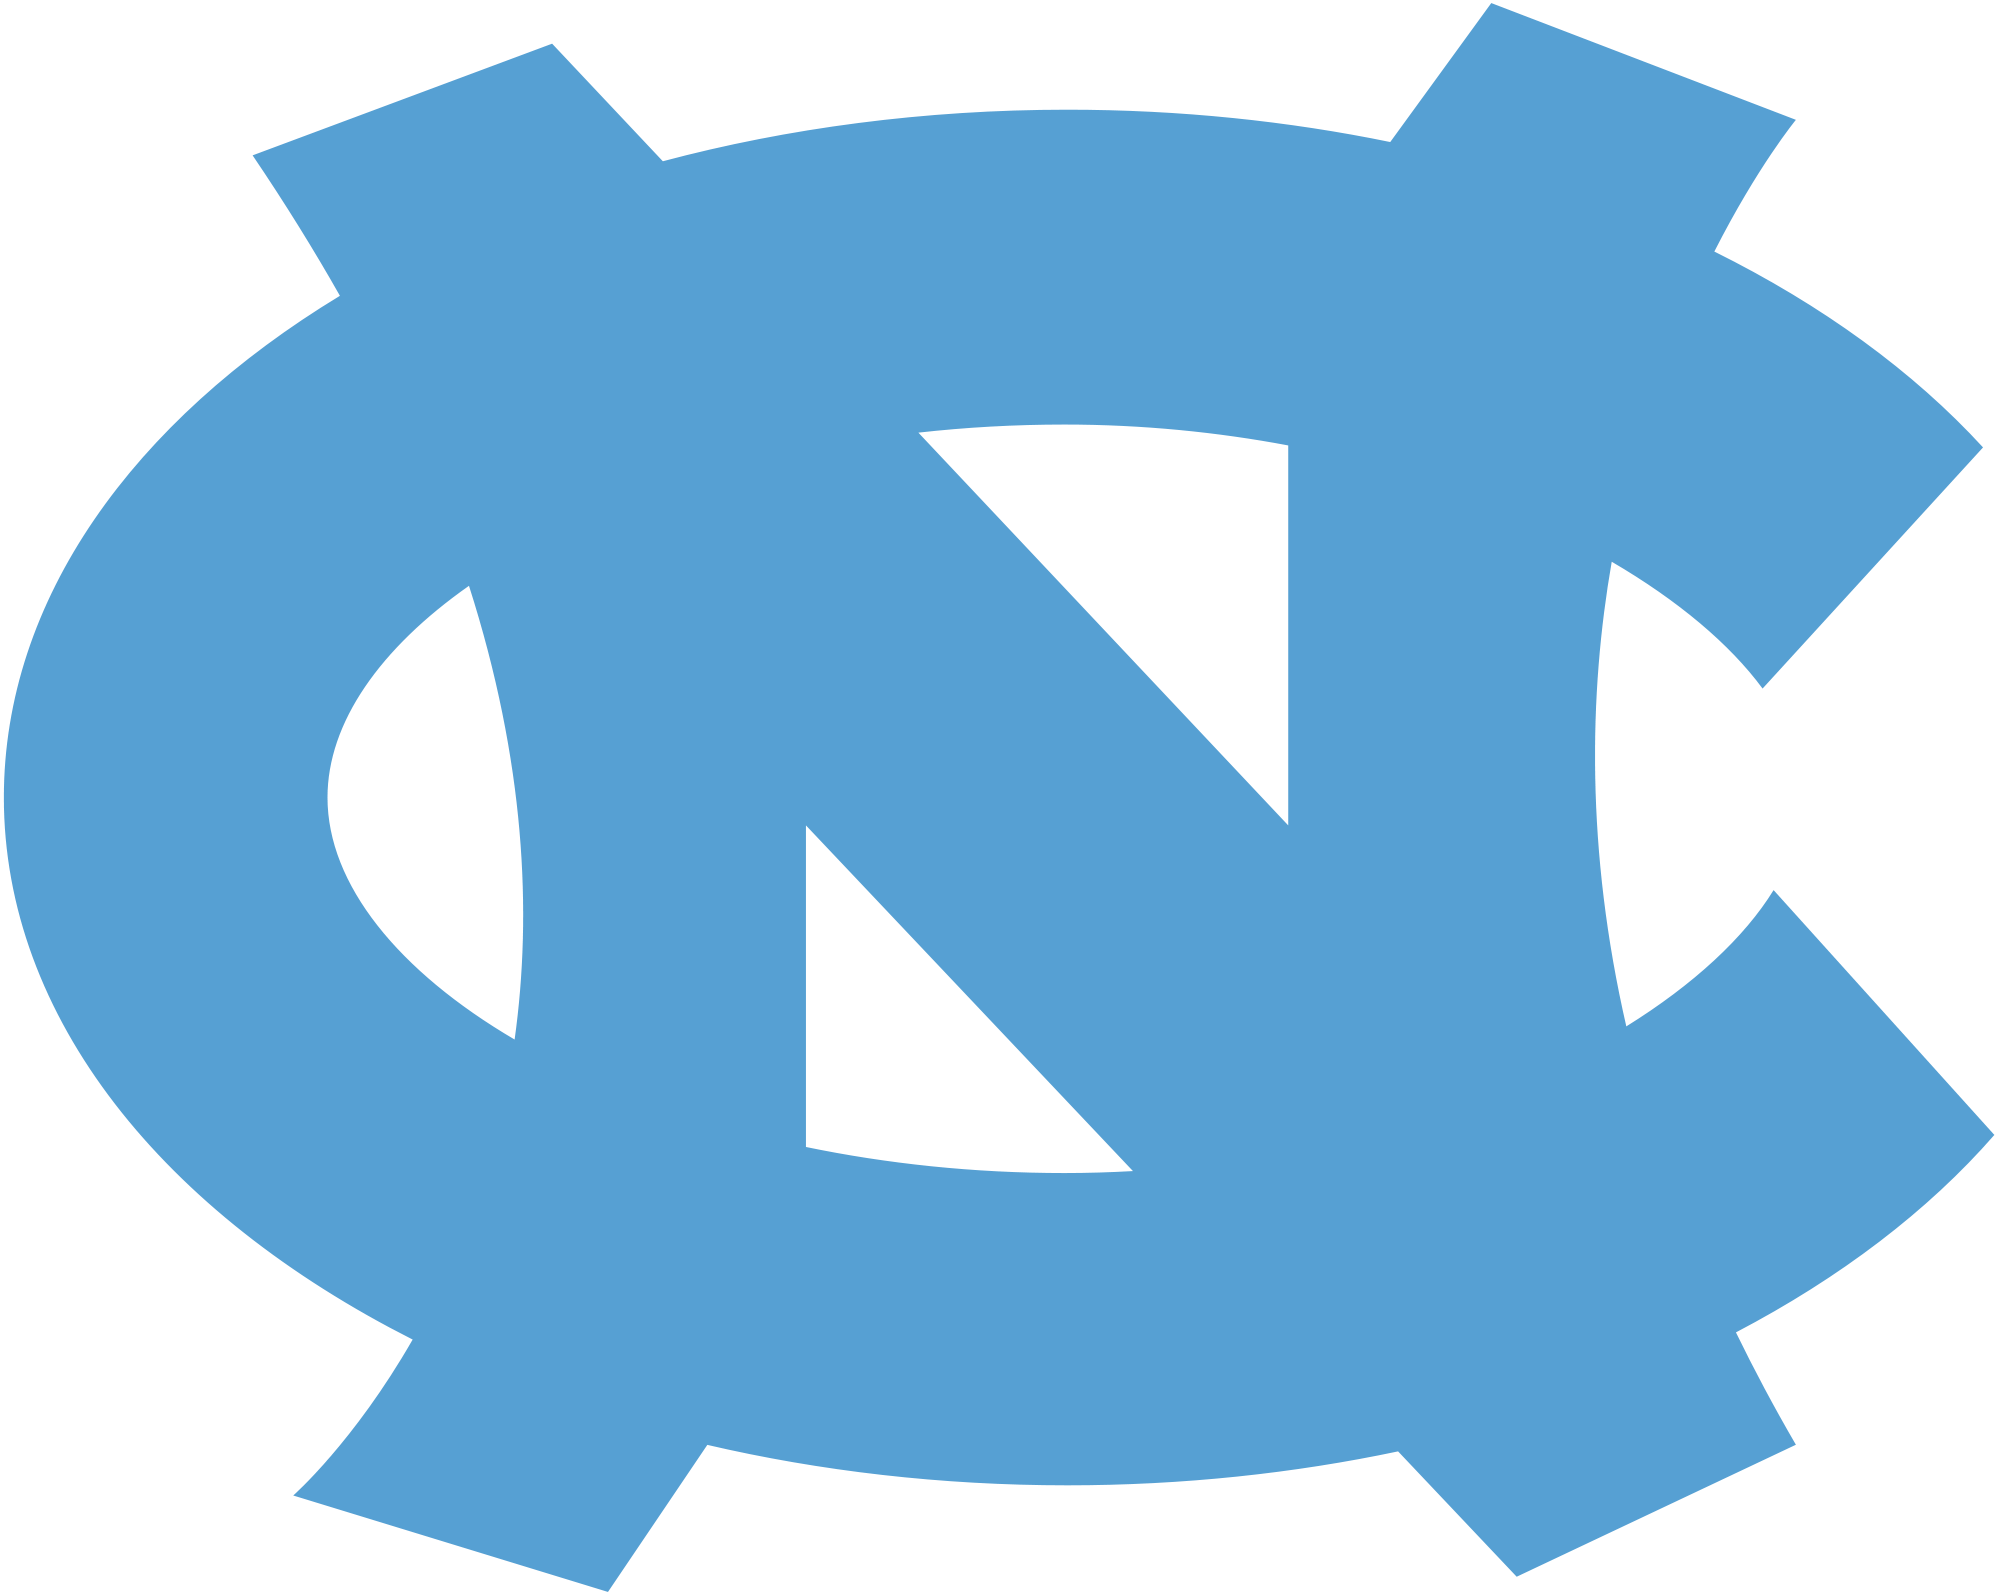 unc logo google search cricut pinterest unc logo and cricut rh pinterest com tar heel logos tarheel logging